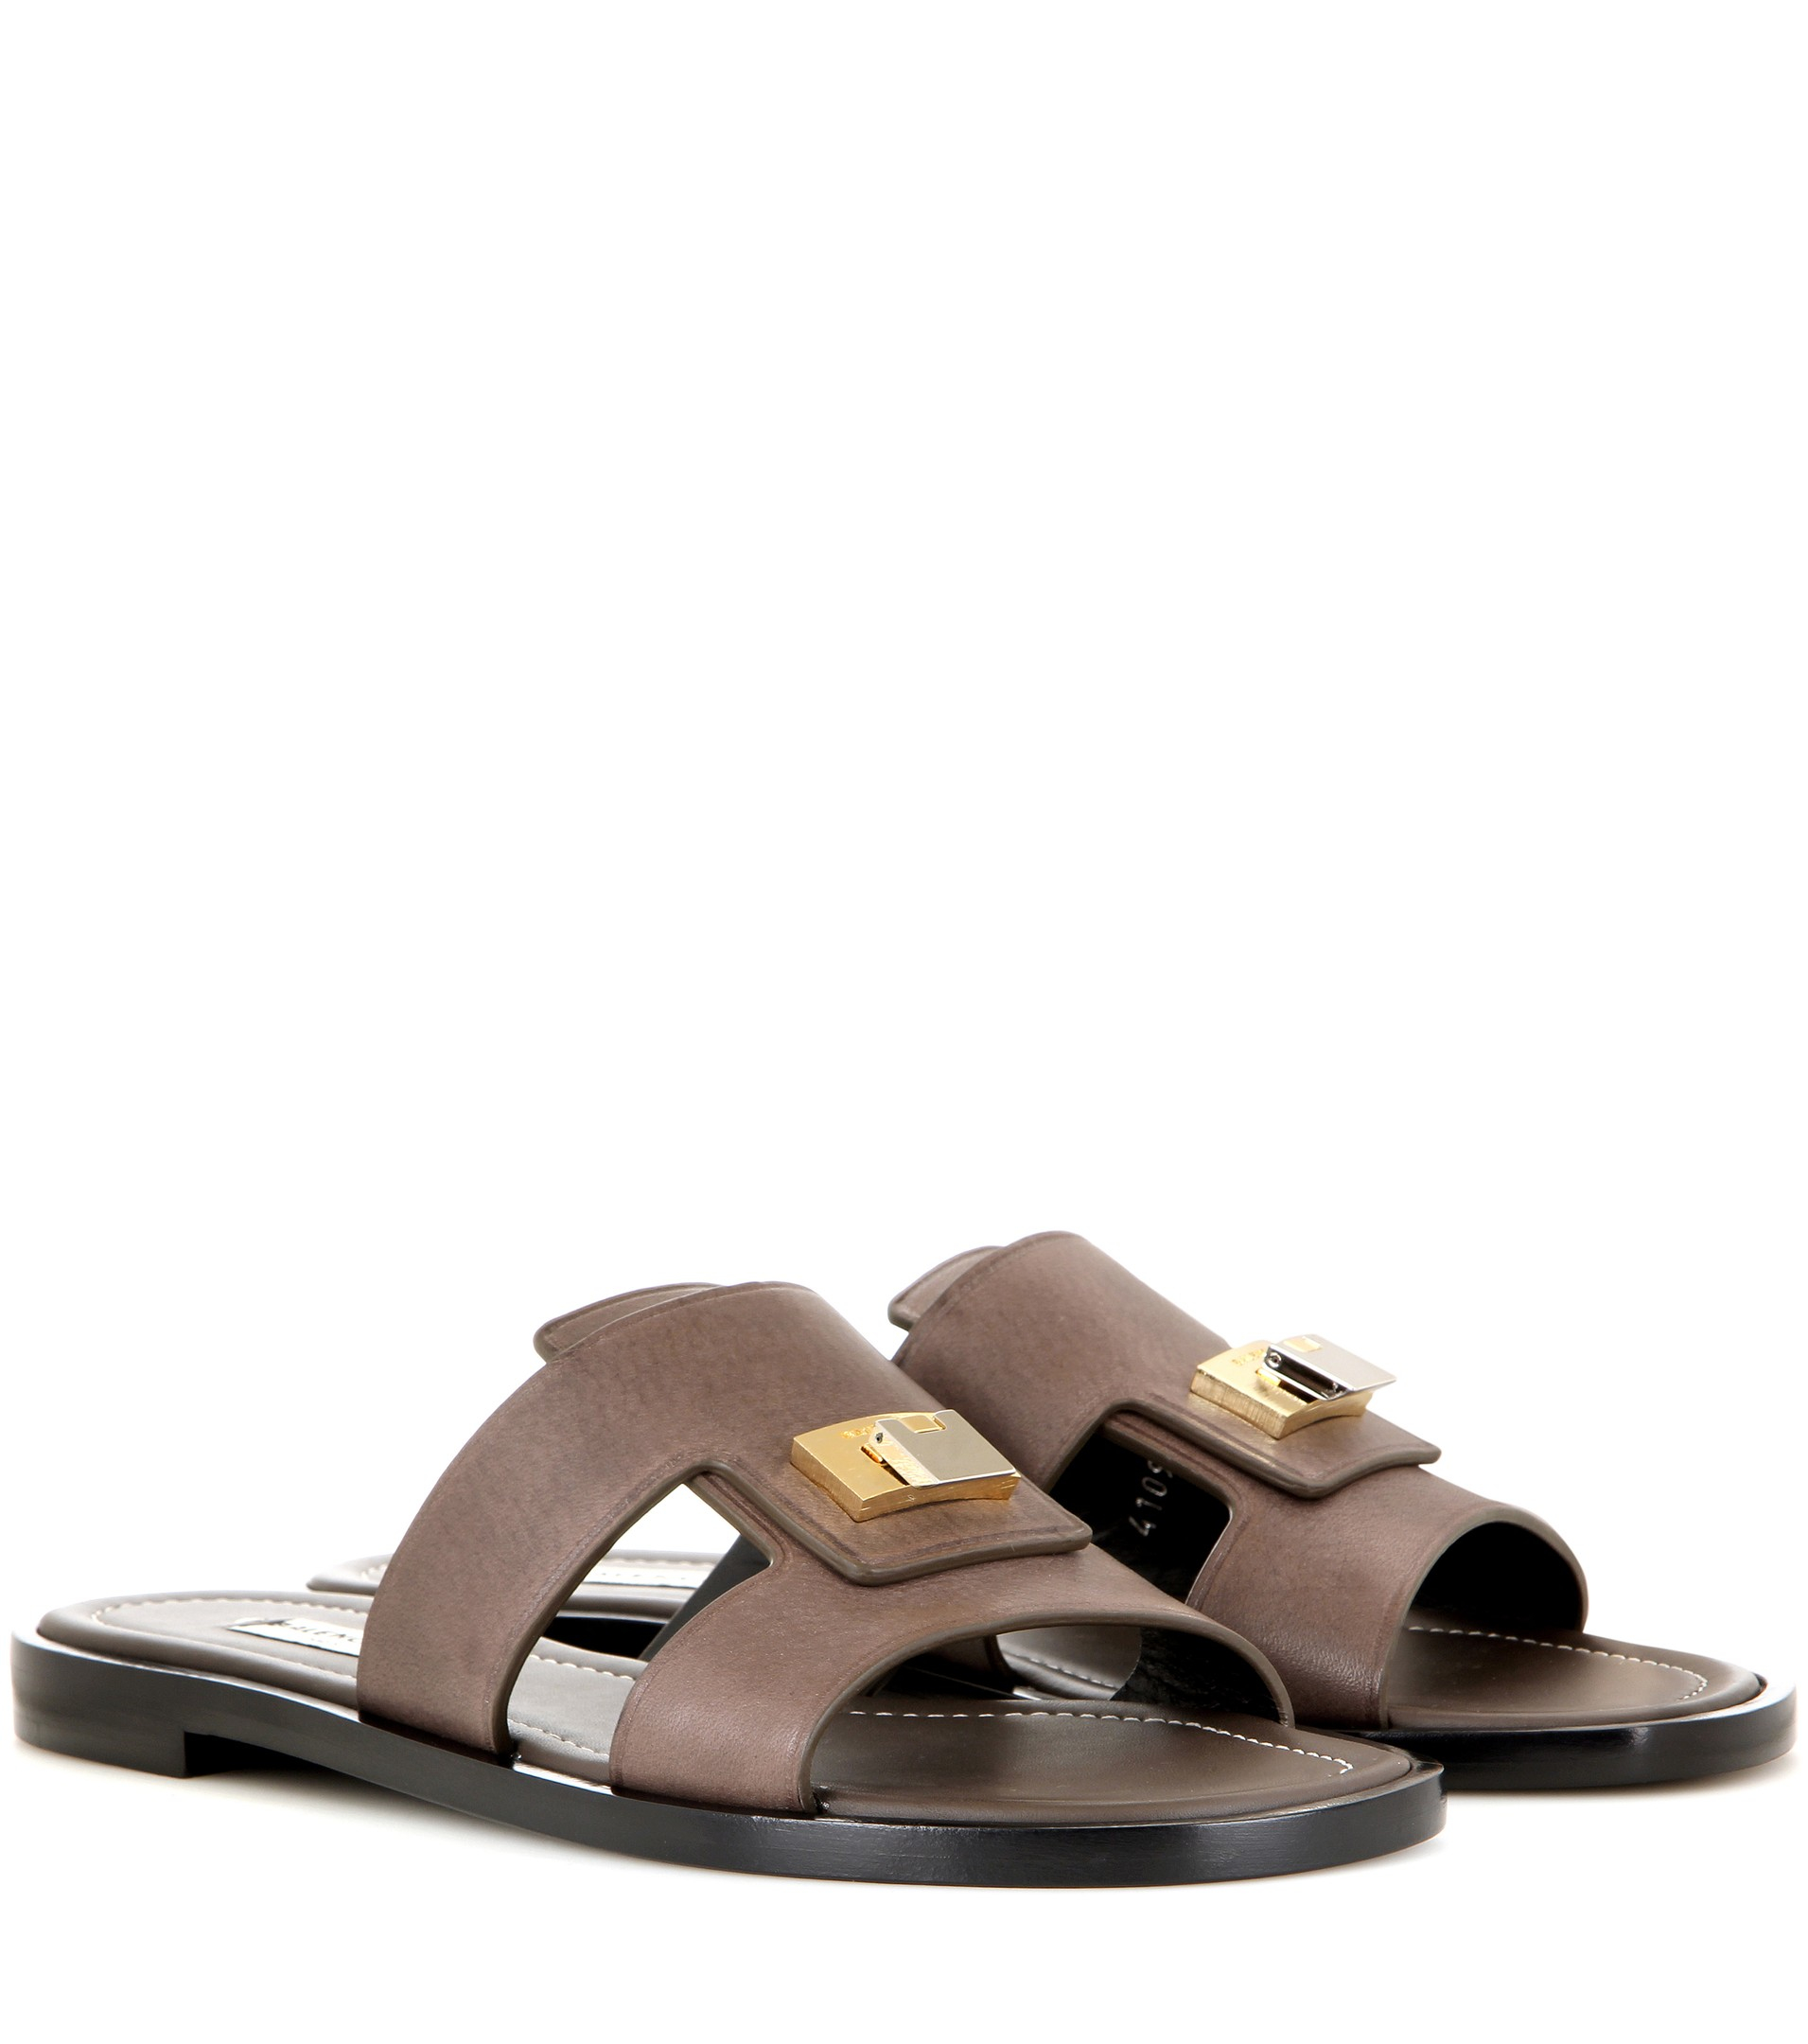 Balenciaga Embellished Leather Sandals new arrival cheap price QecmA1nsCZ